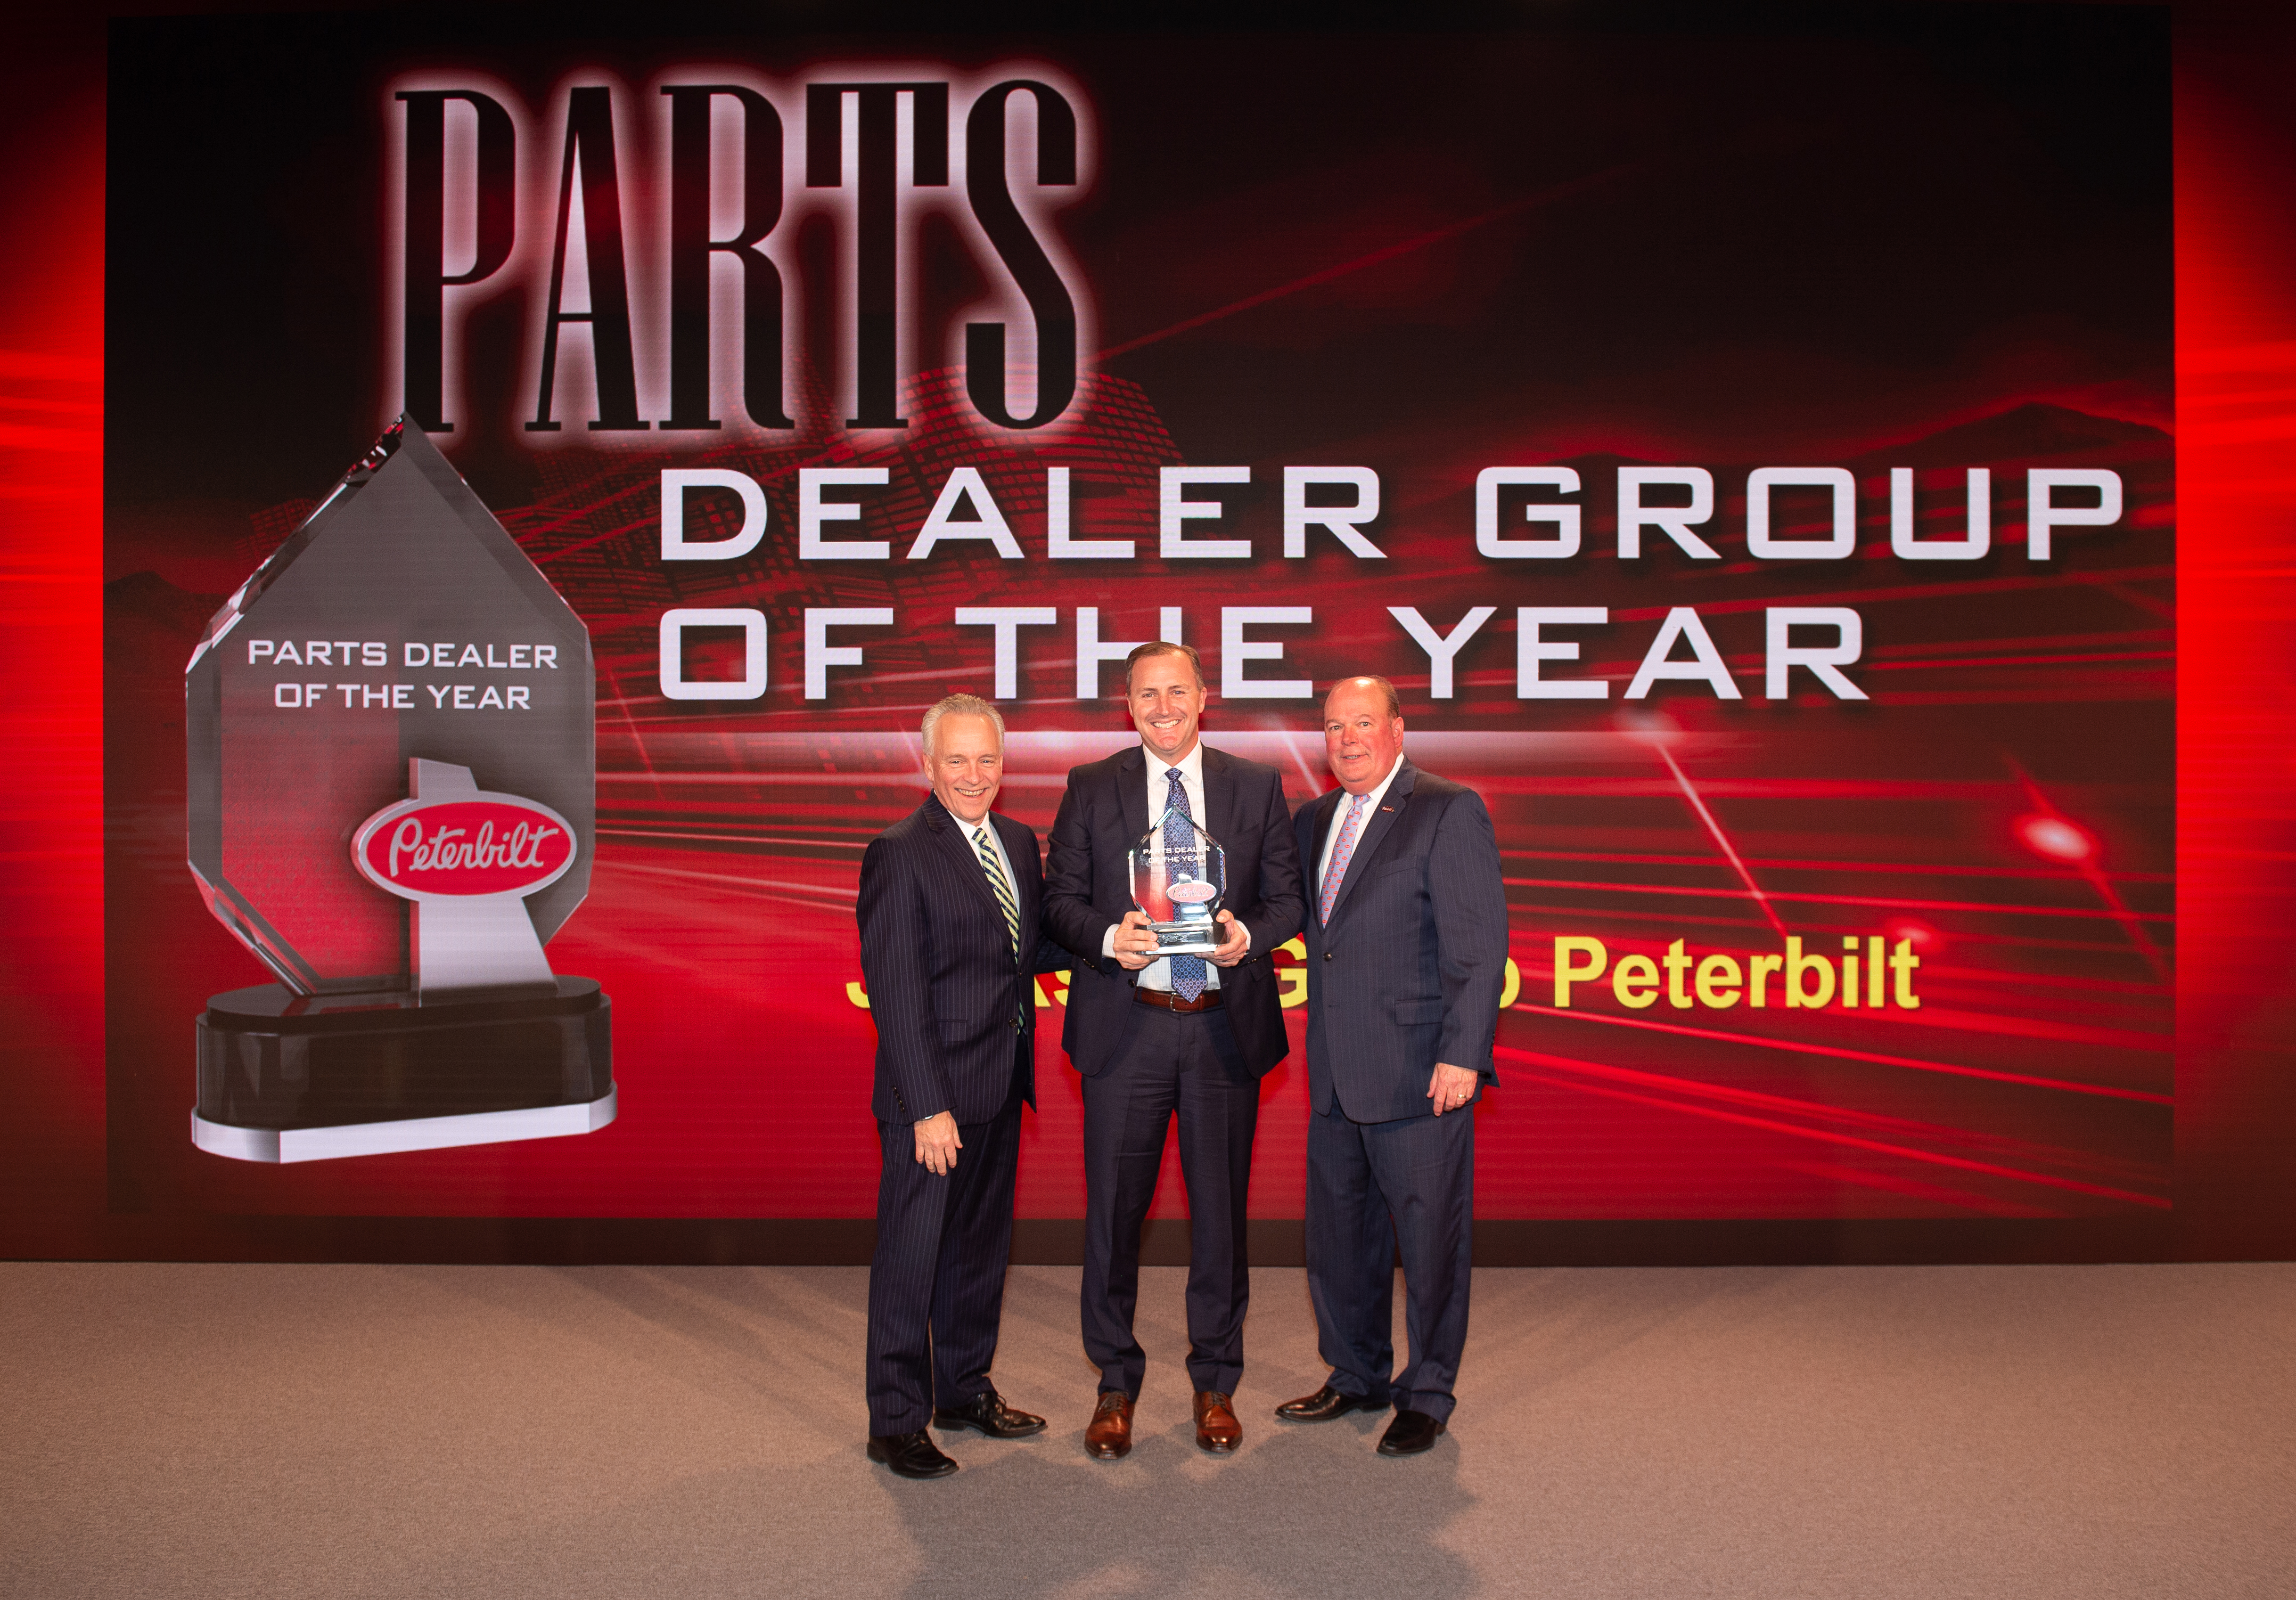 Parts Dealer of the Year: Jackson Group Peterbilt